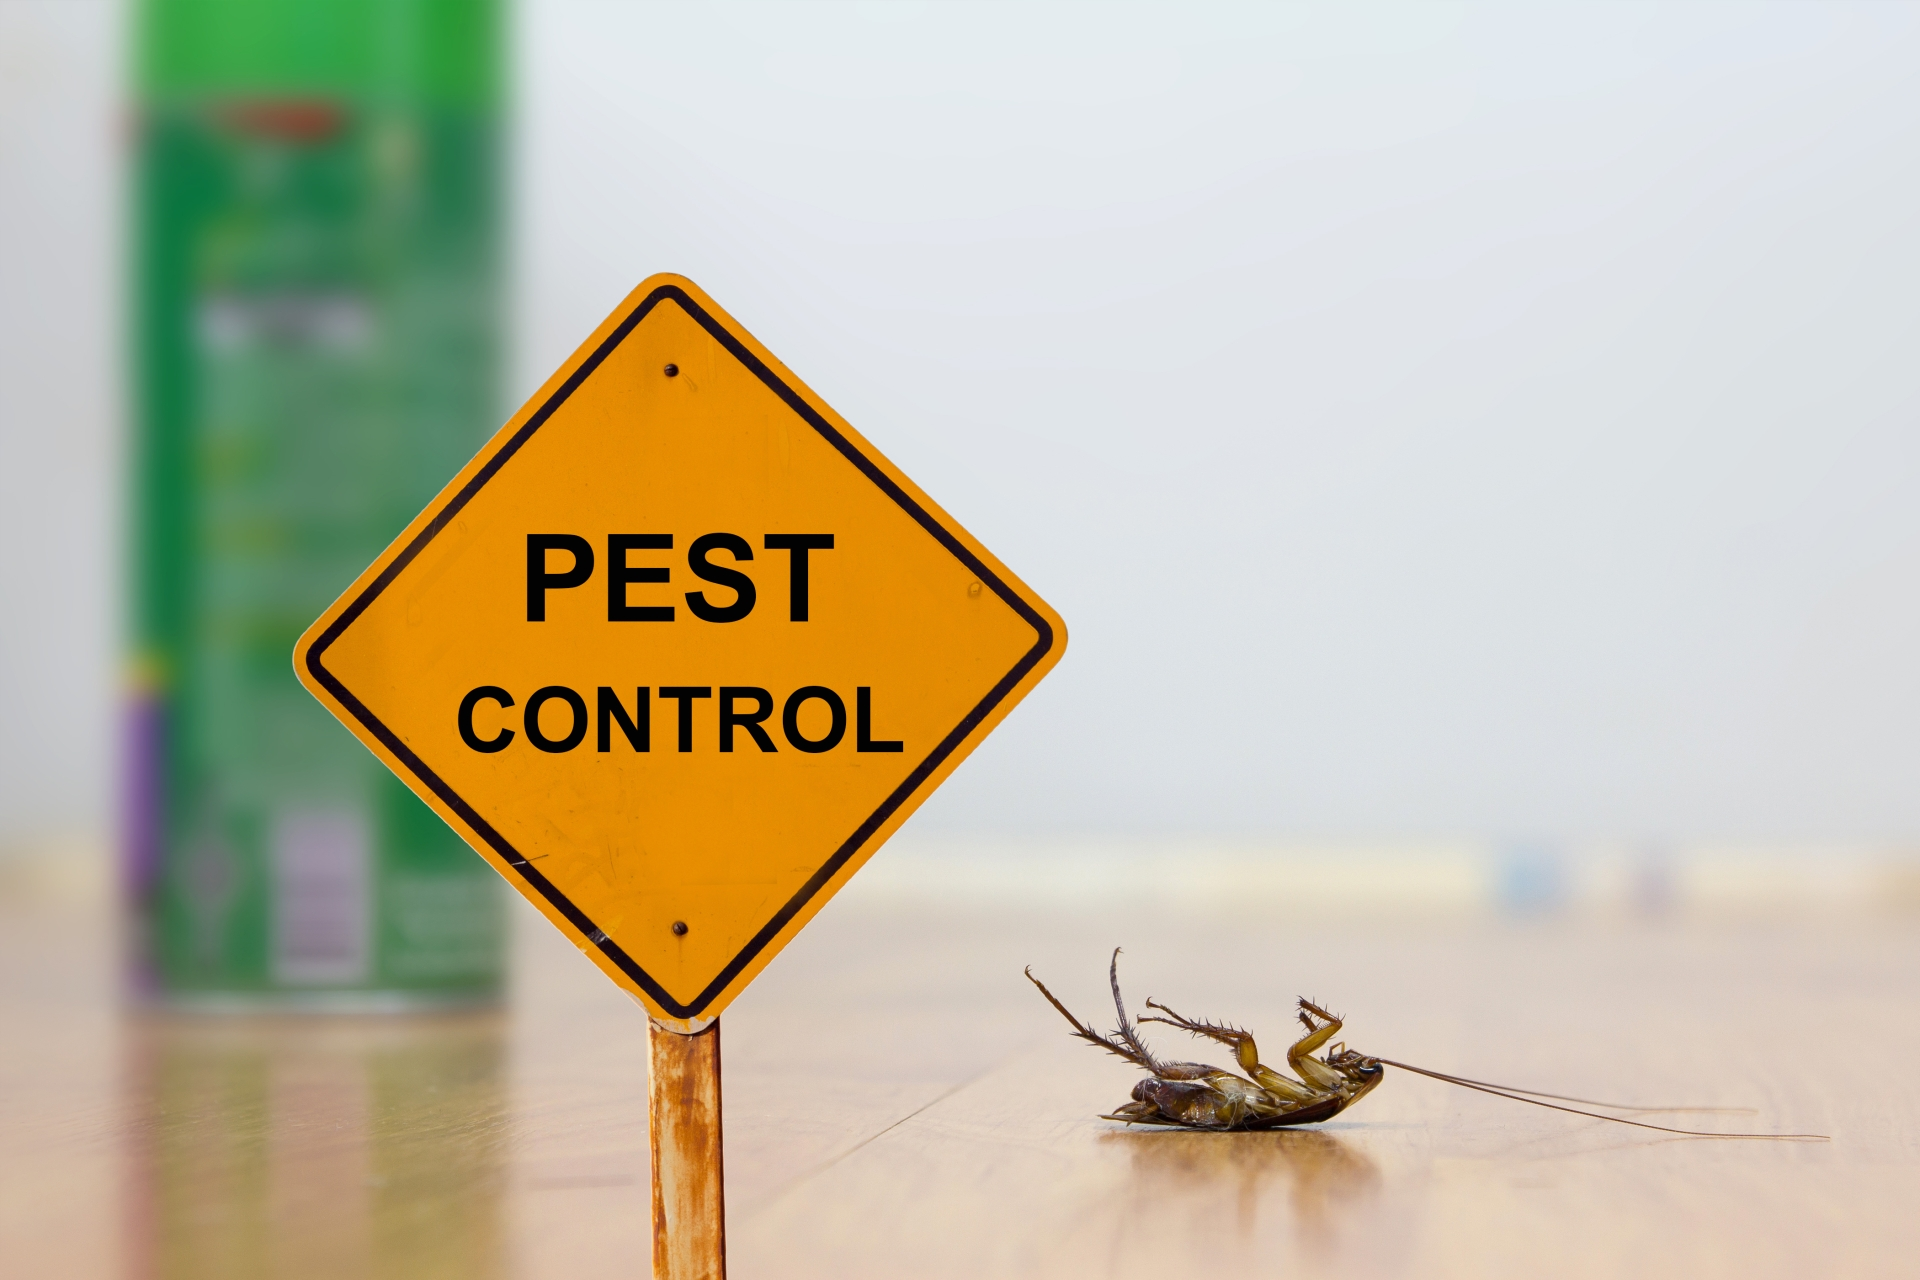 24 Hour Pest Control, Pest Control in West Horsley, East Horsley, Effingham, KT24. Call Now 020 8166 9746